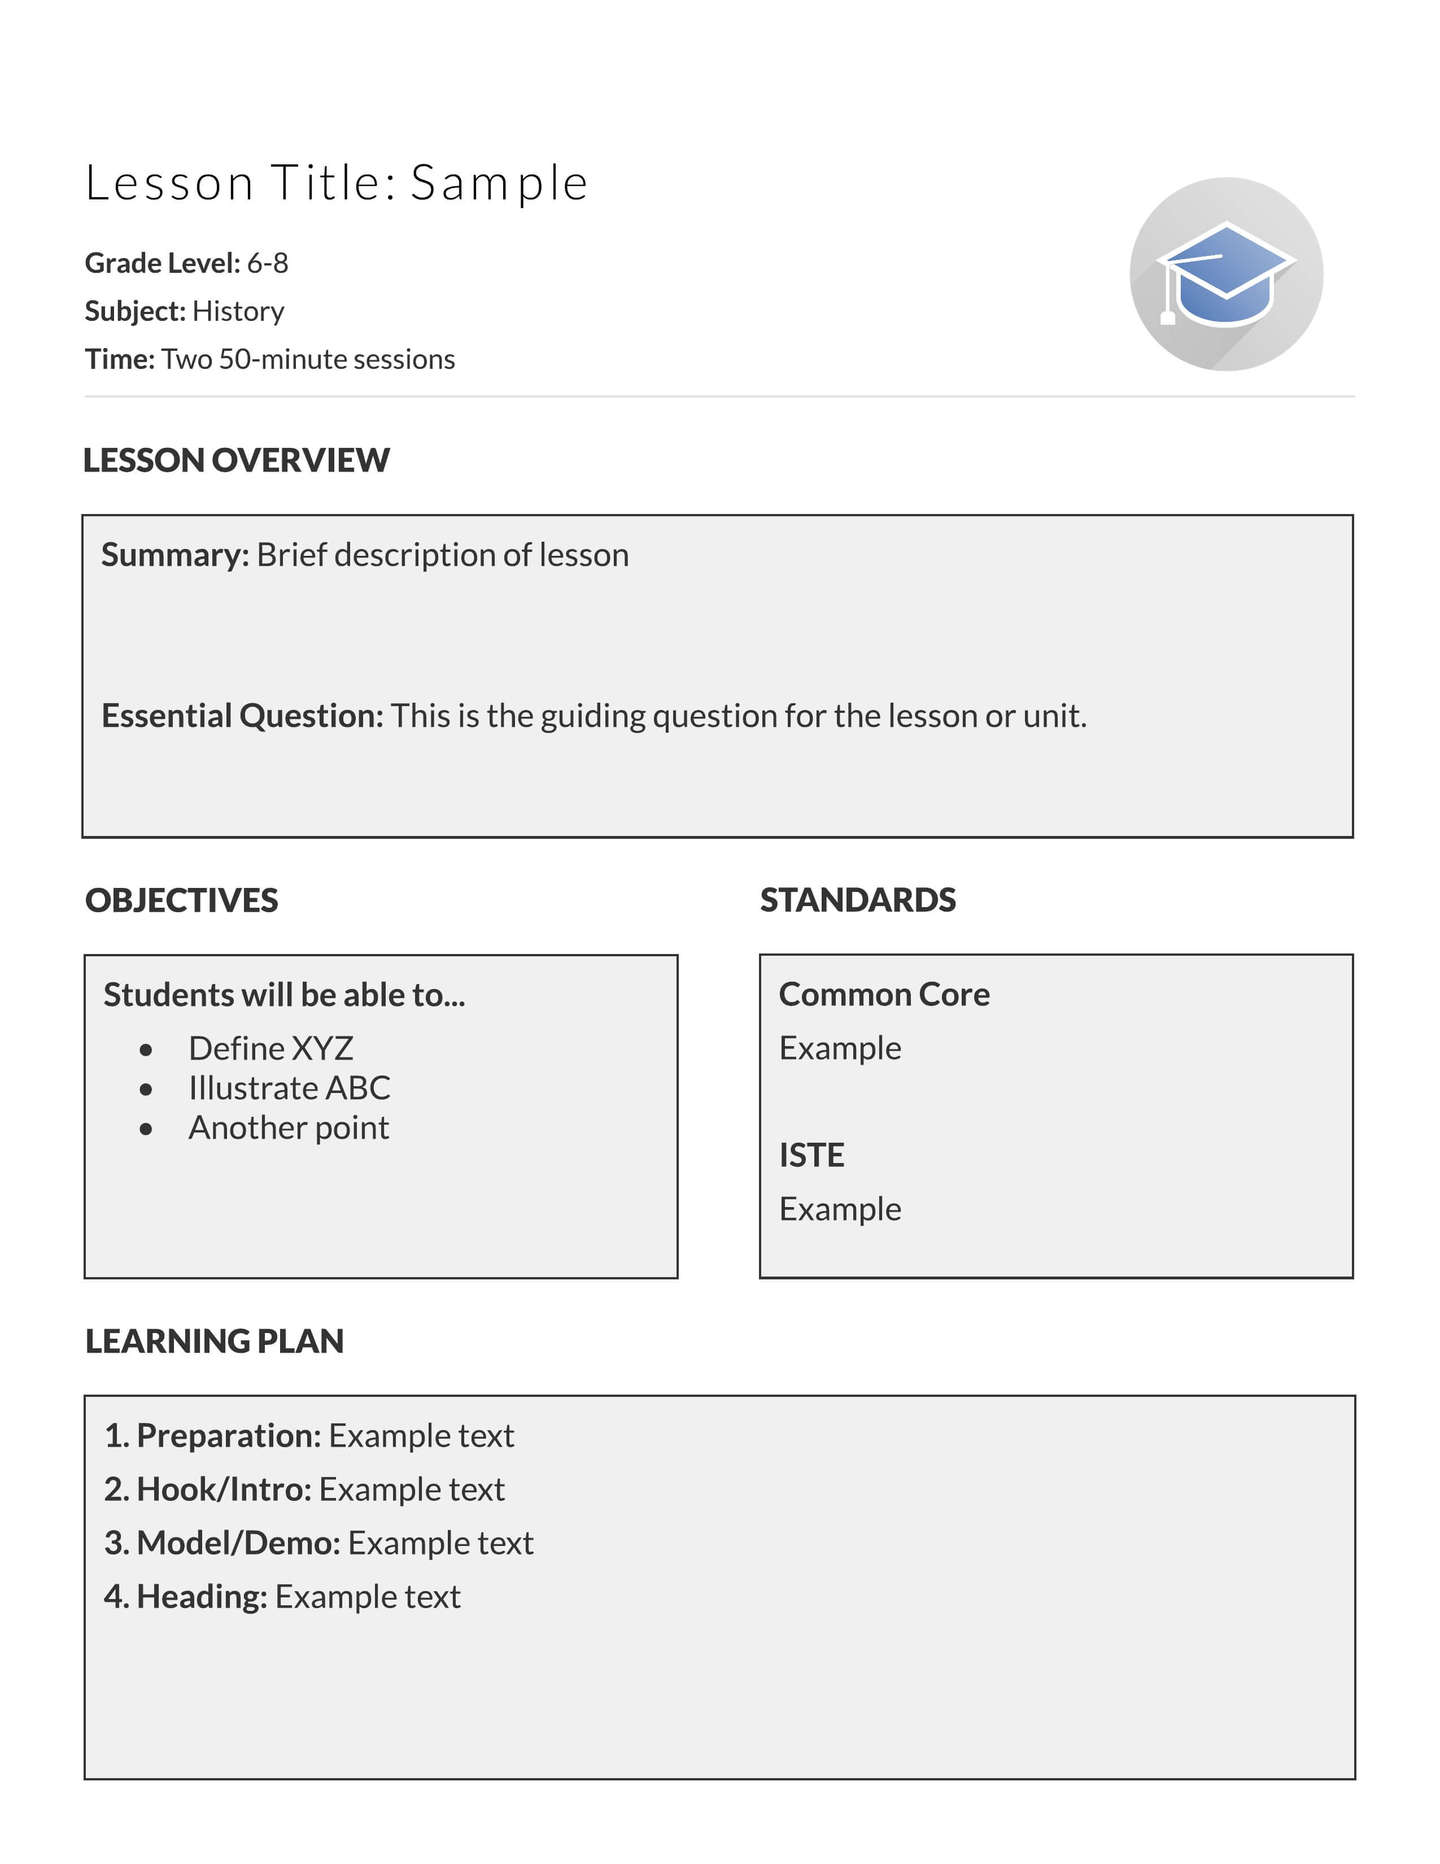 6 point lesson plan template - 5 free lesson plan templates examples lucidpress